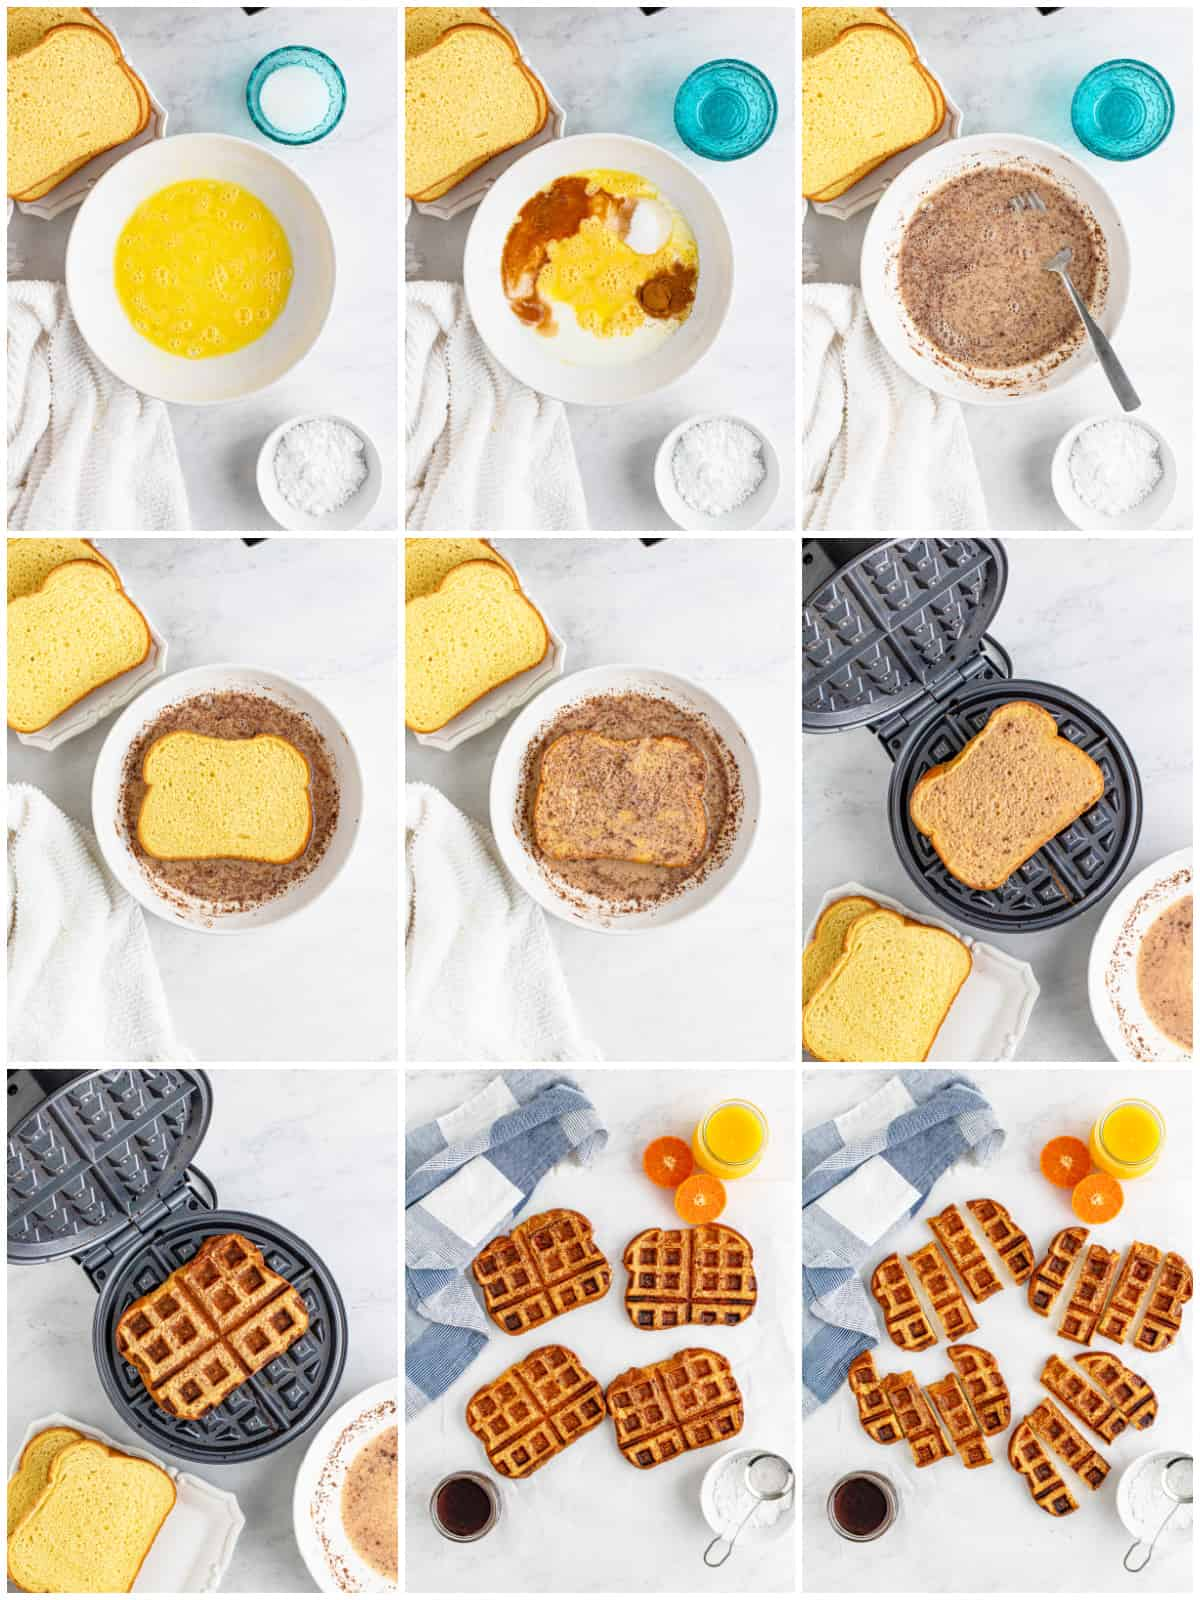 Step by step photos on how to make French Toast Waffle Sticks.